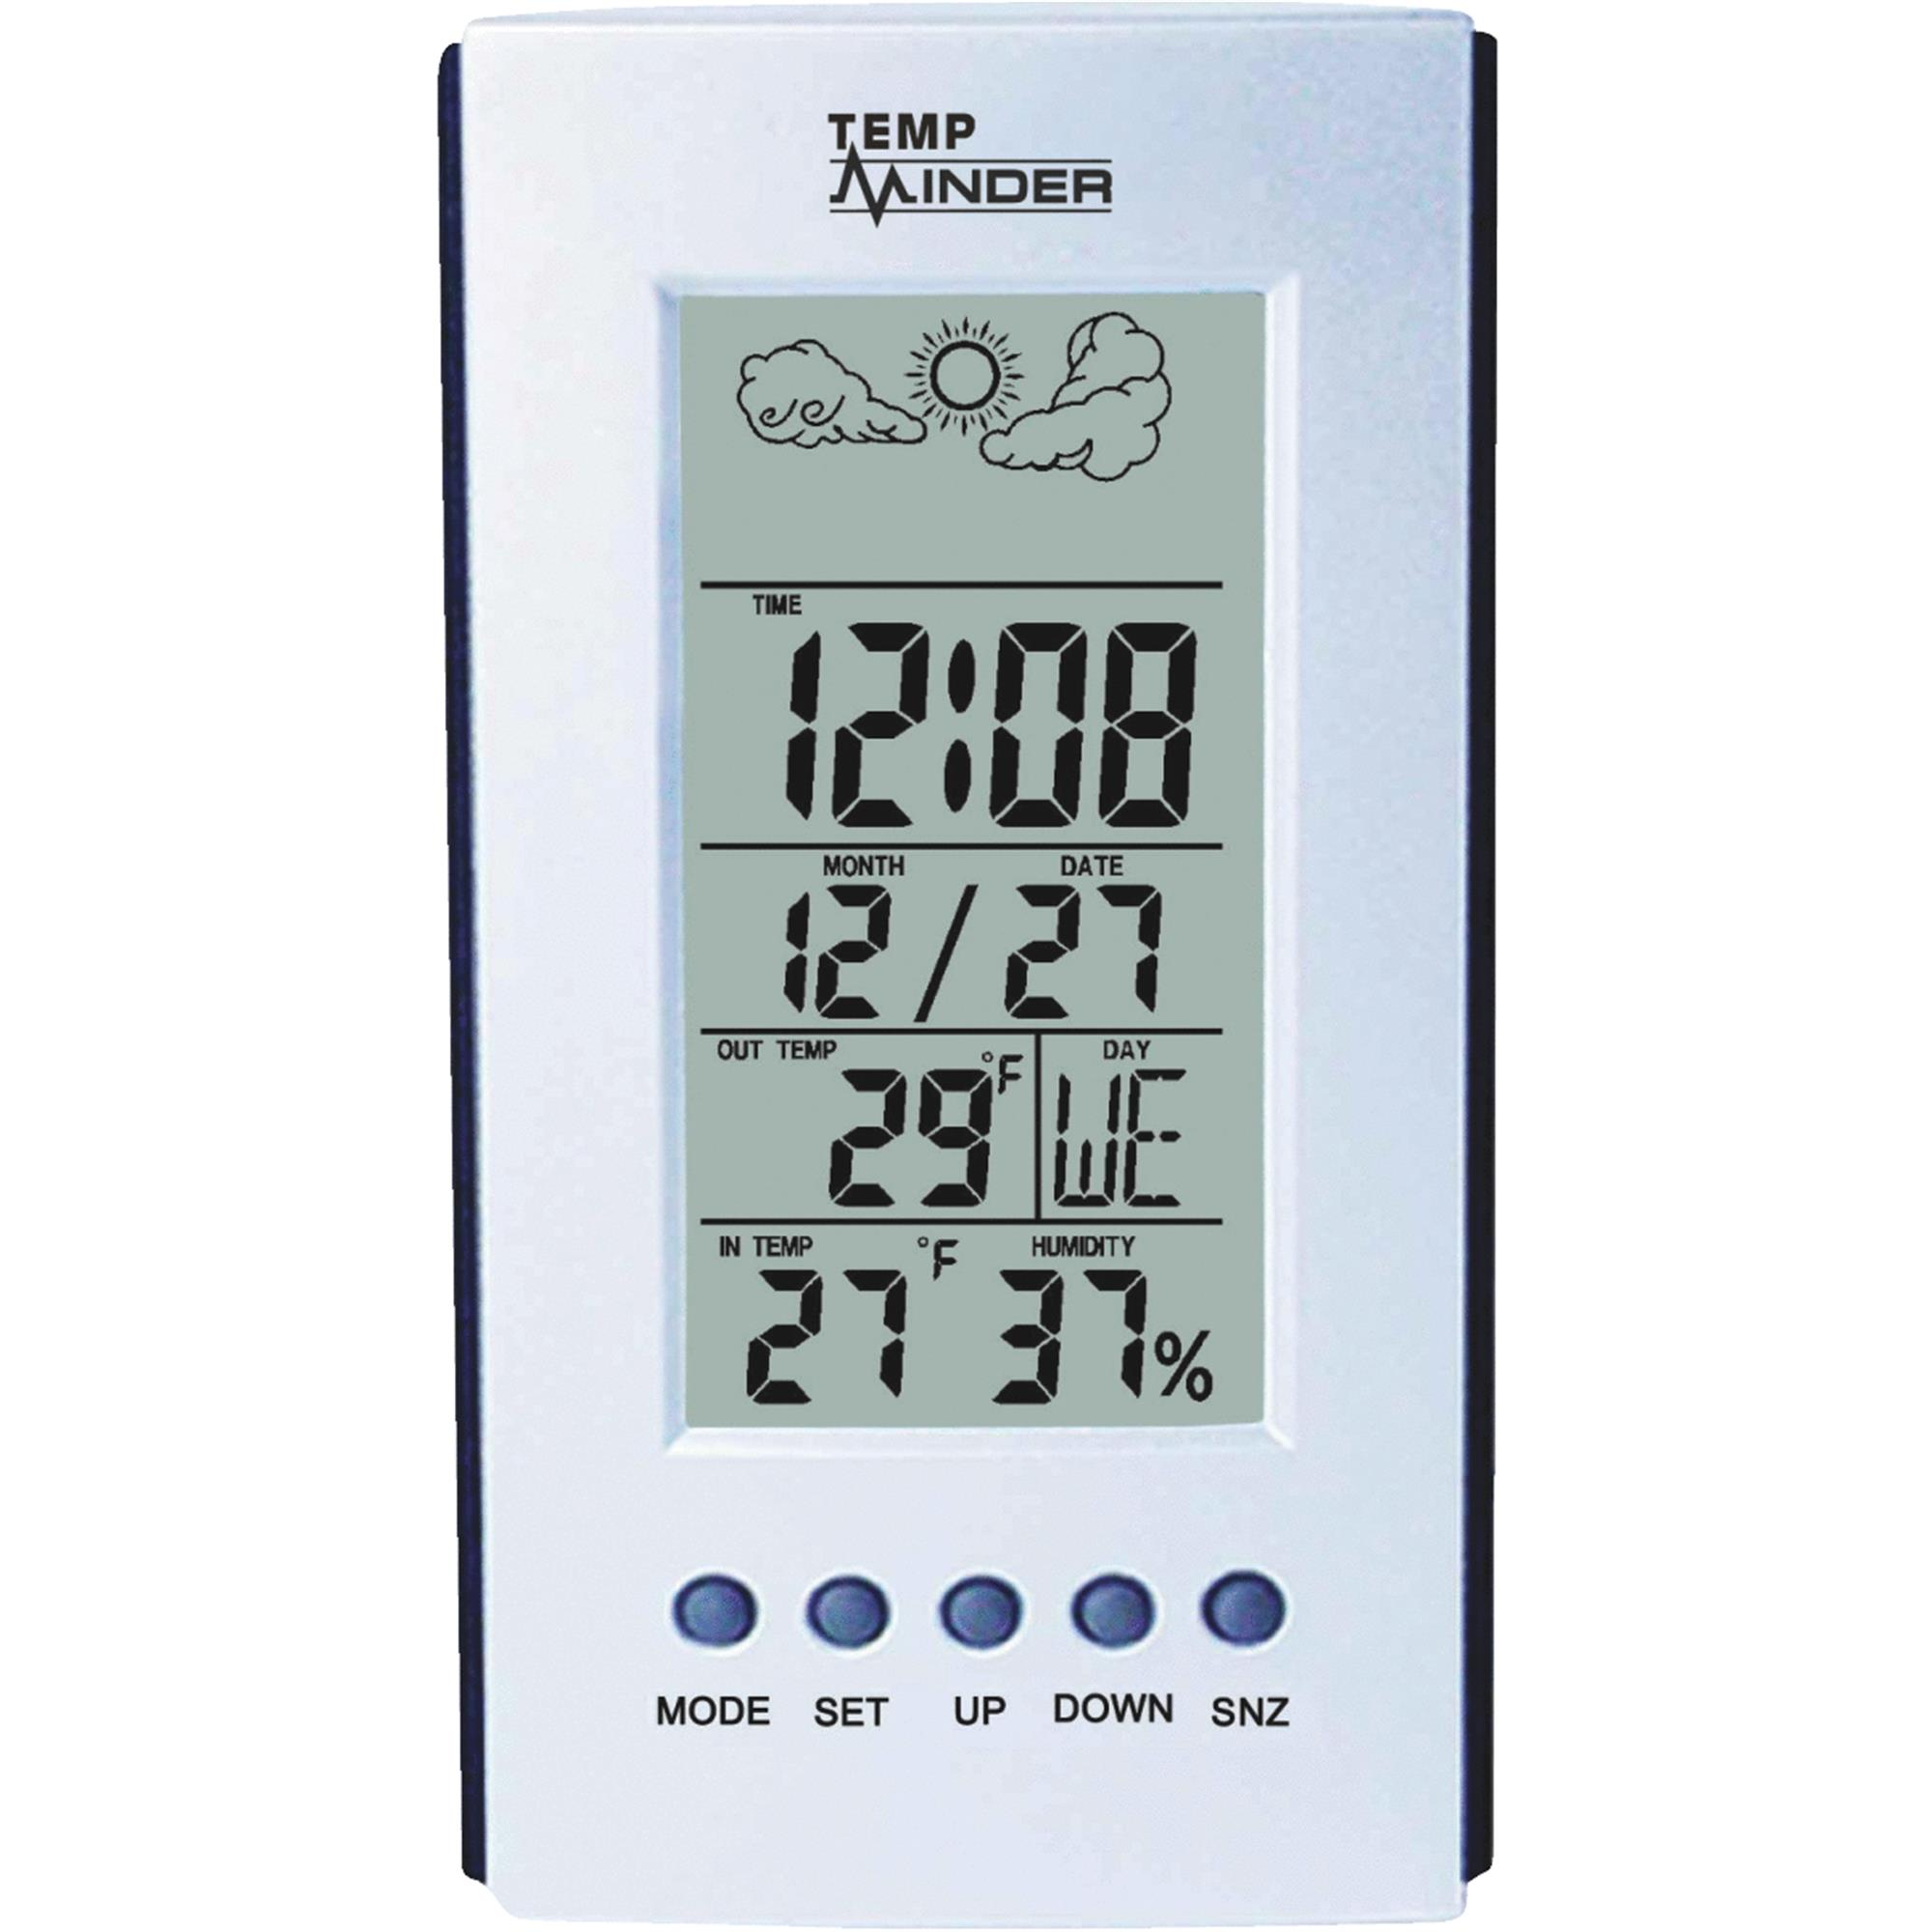 Temp Minder Full Featured Weather Station by Minder Research